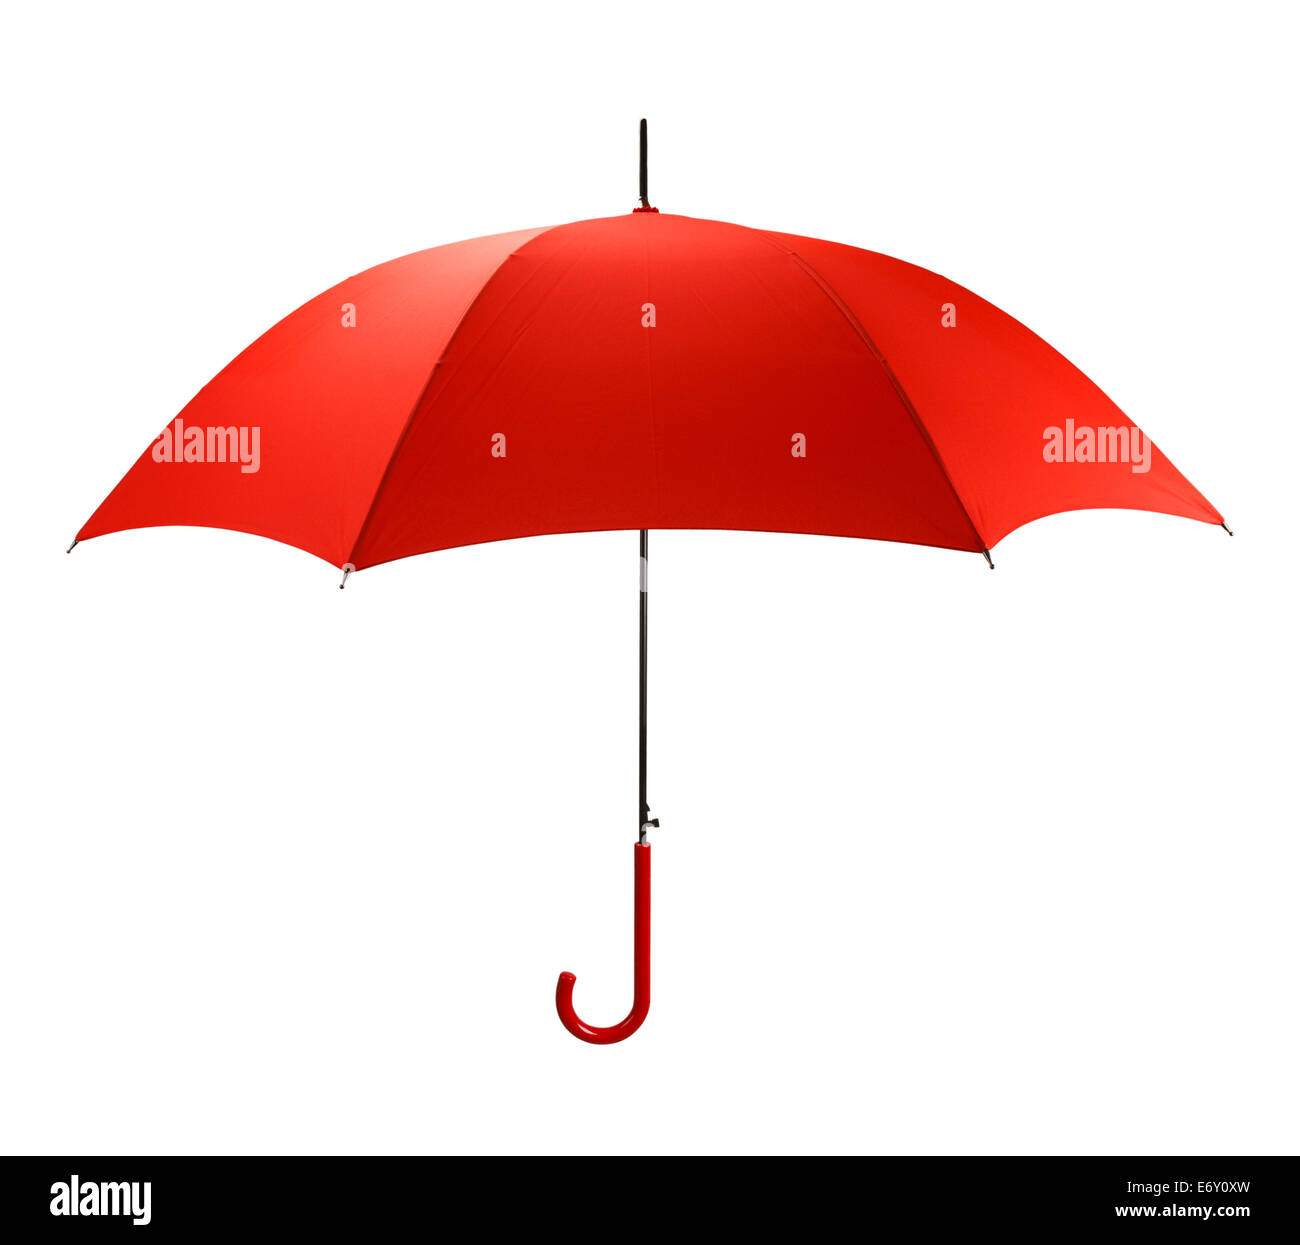 Bright Red Umbrella Side  View Isolated on White Background. - Stock Image